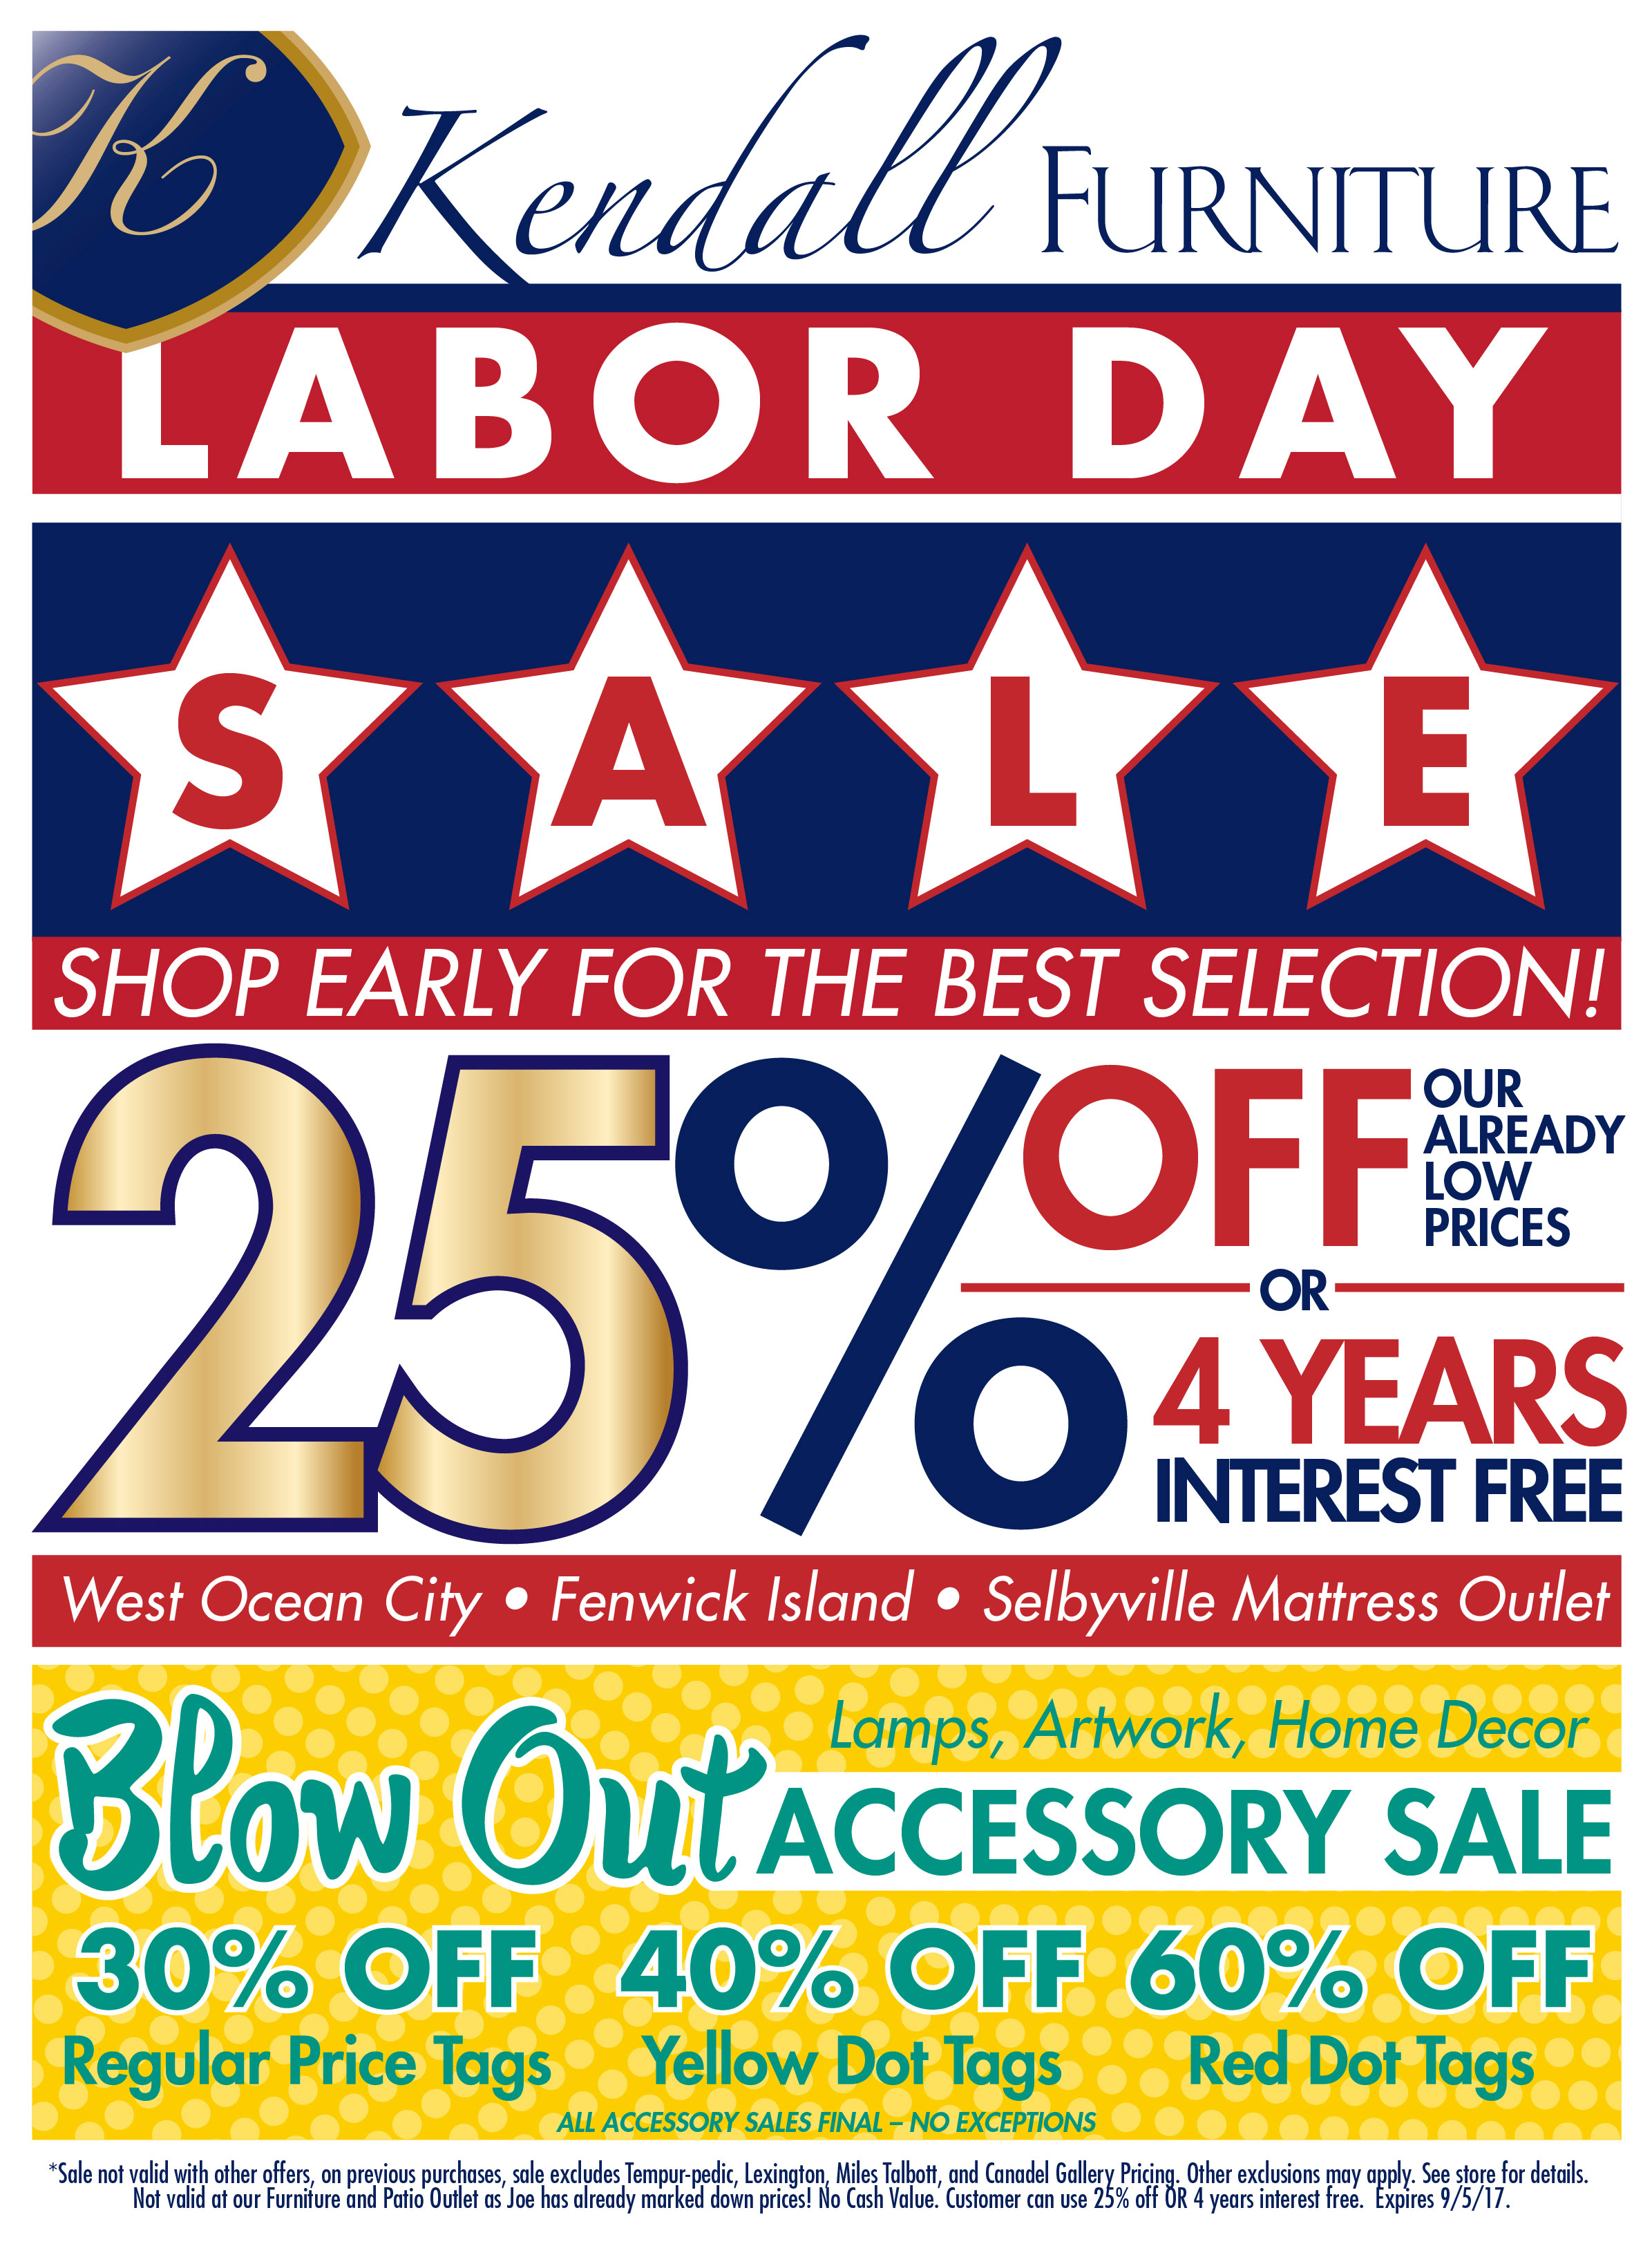 Also browse special Ads and Circular on major holiday sales days: January White sales, Memorial Day, Columbus Day, Valentines Day, Father's Day, Easter sales, Veterans Day, Presidents Day, July 4th sales, Black Friday ads, Cyber Monday deals, Mother's Day, Labor Day or Christmas sales.